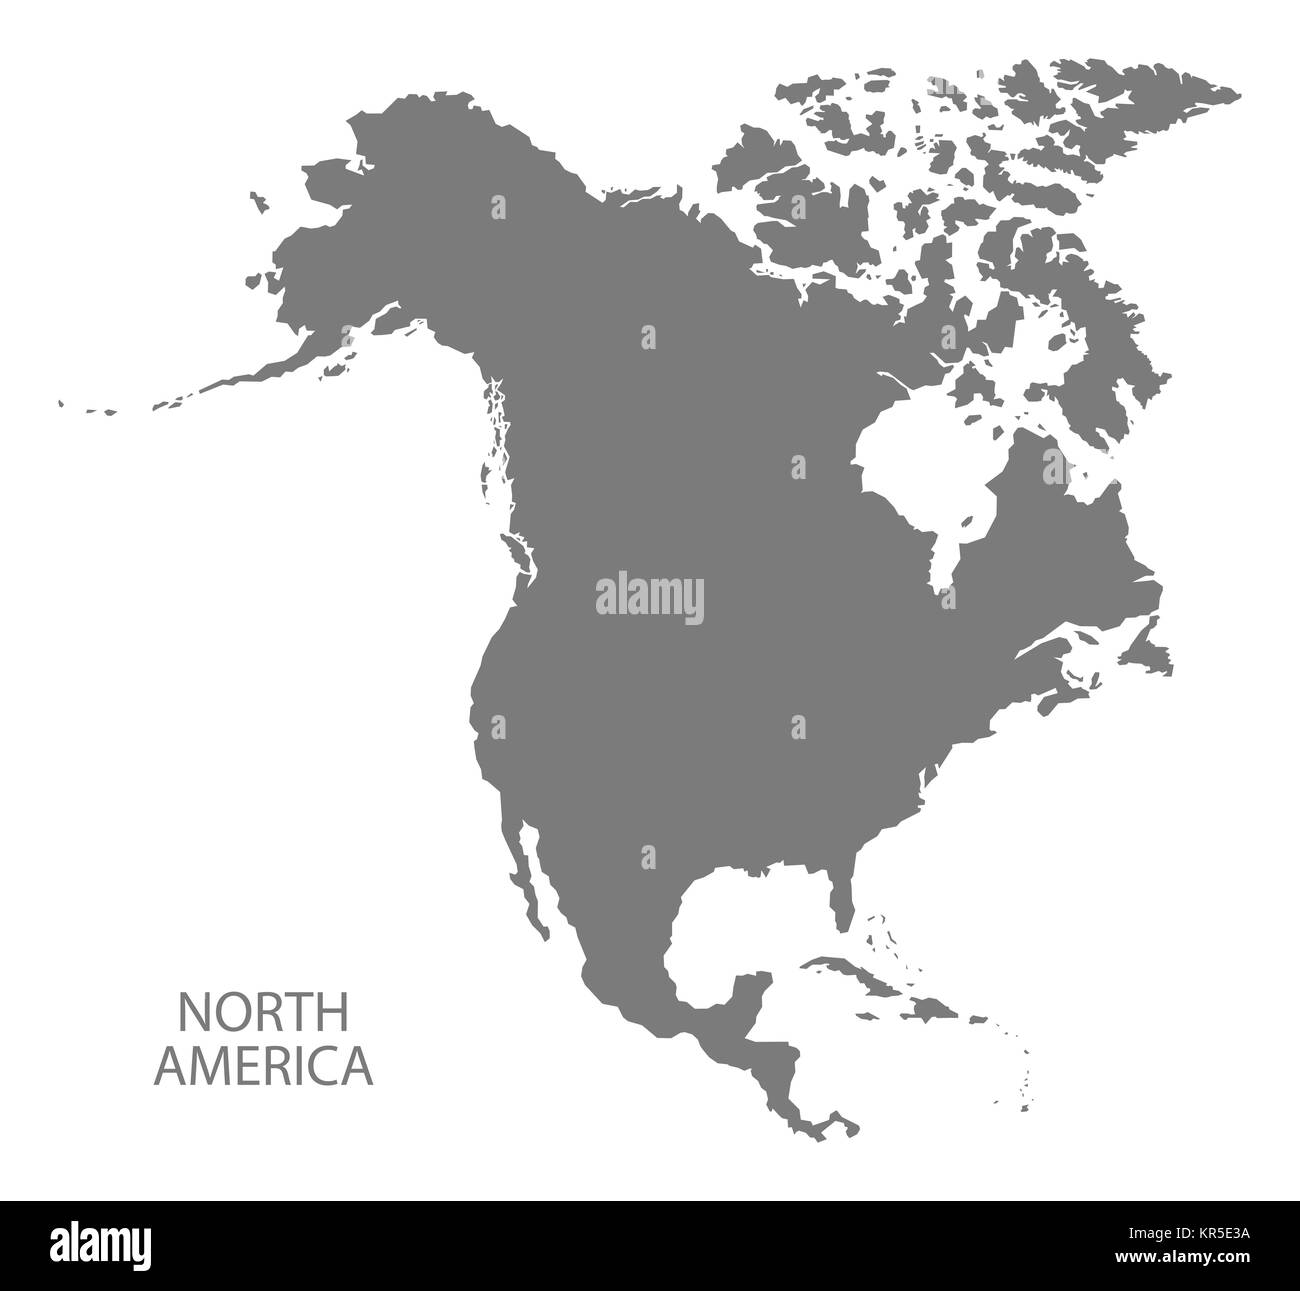 North America Map Black and White Stock Photos & Images   Alamy